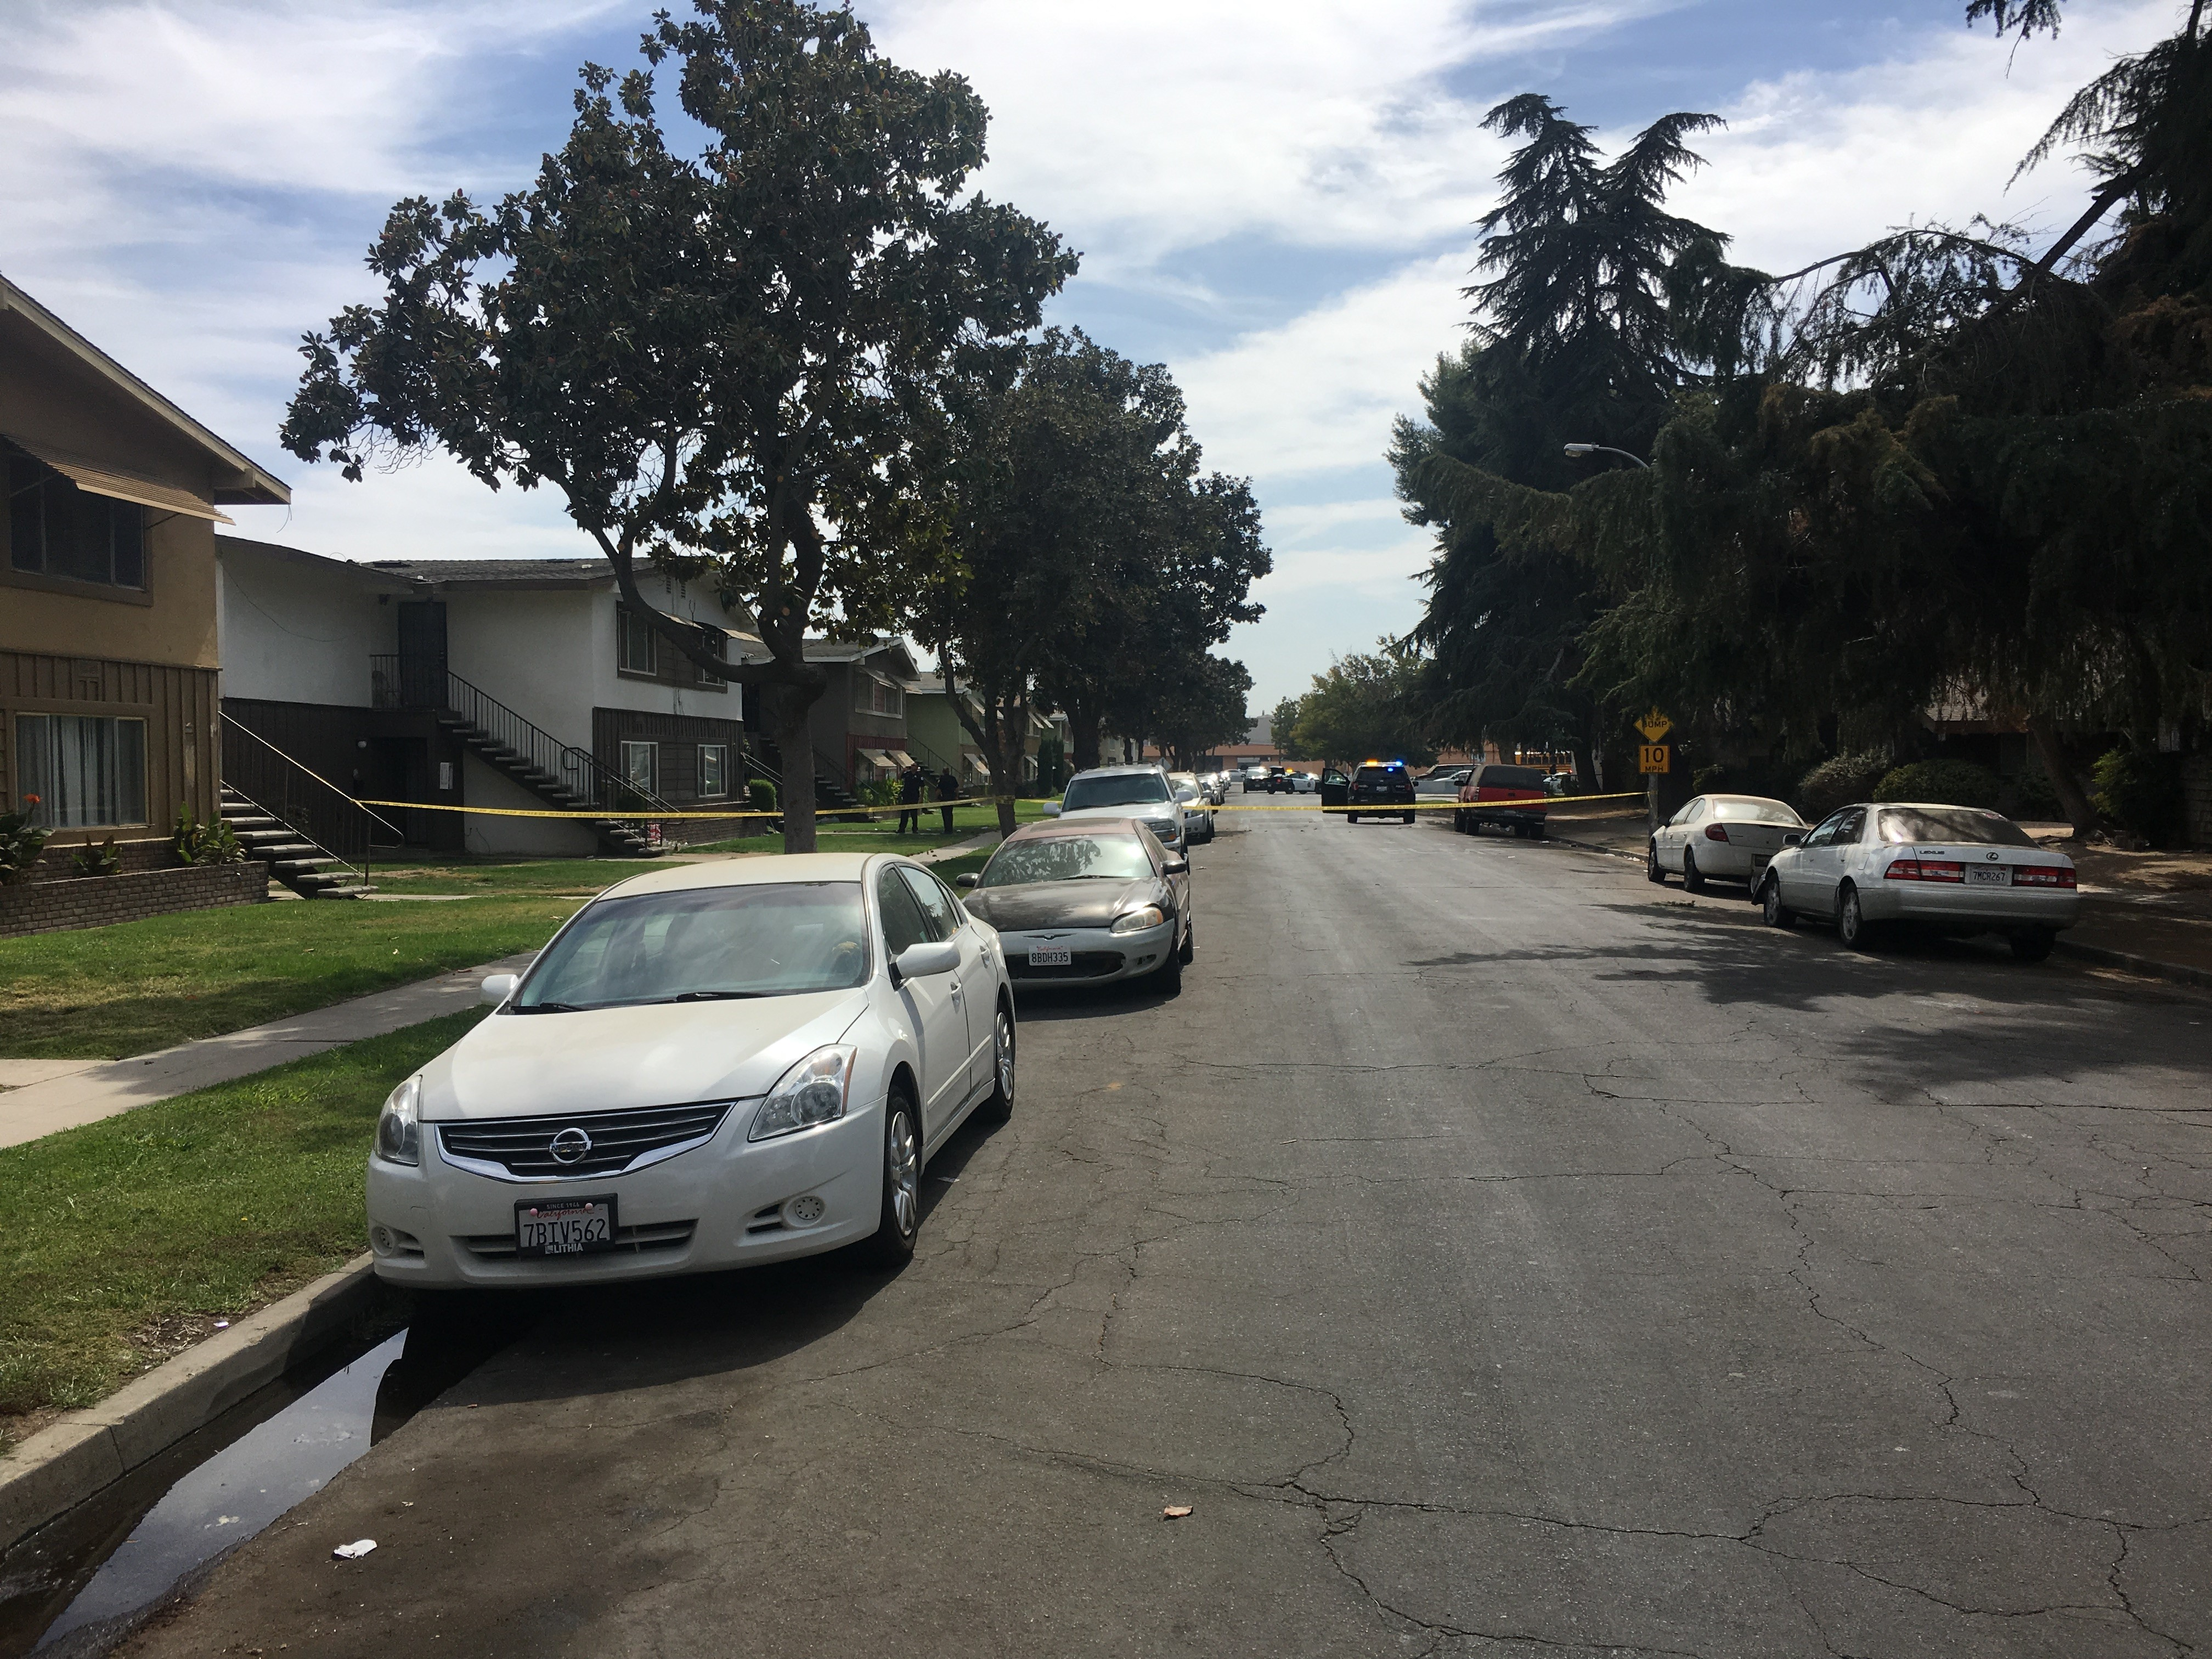 24-year old man shot while playing video game in Central Fresno